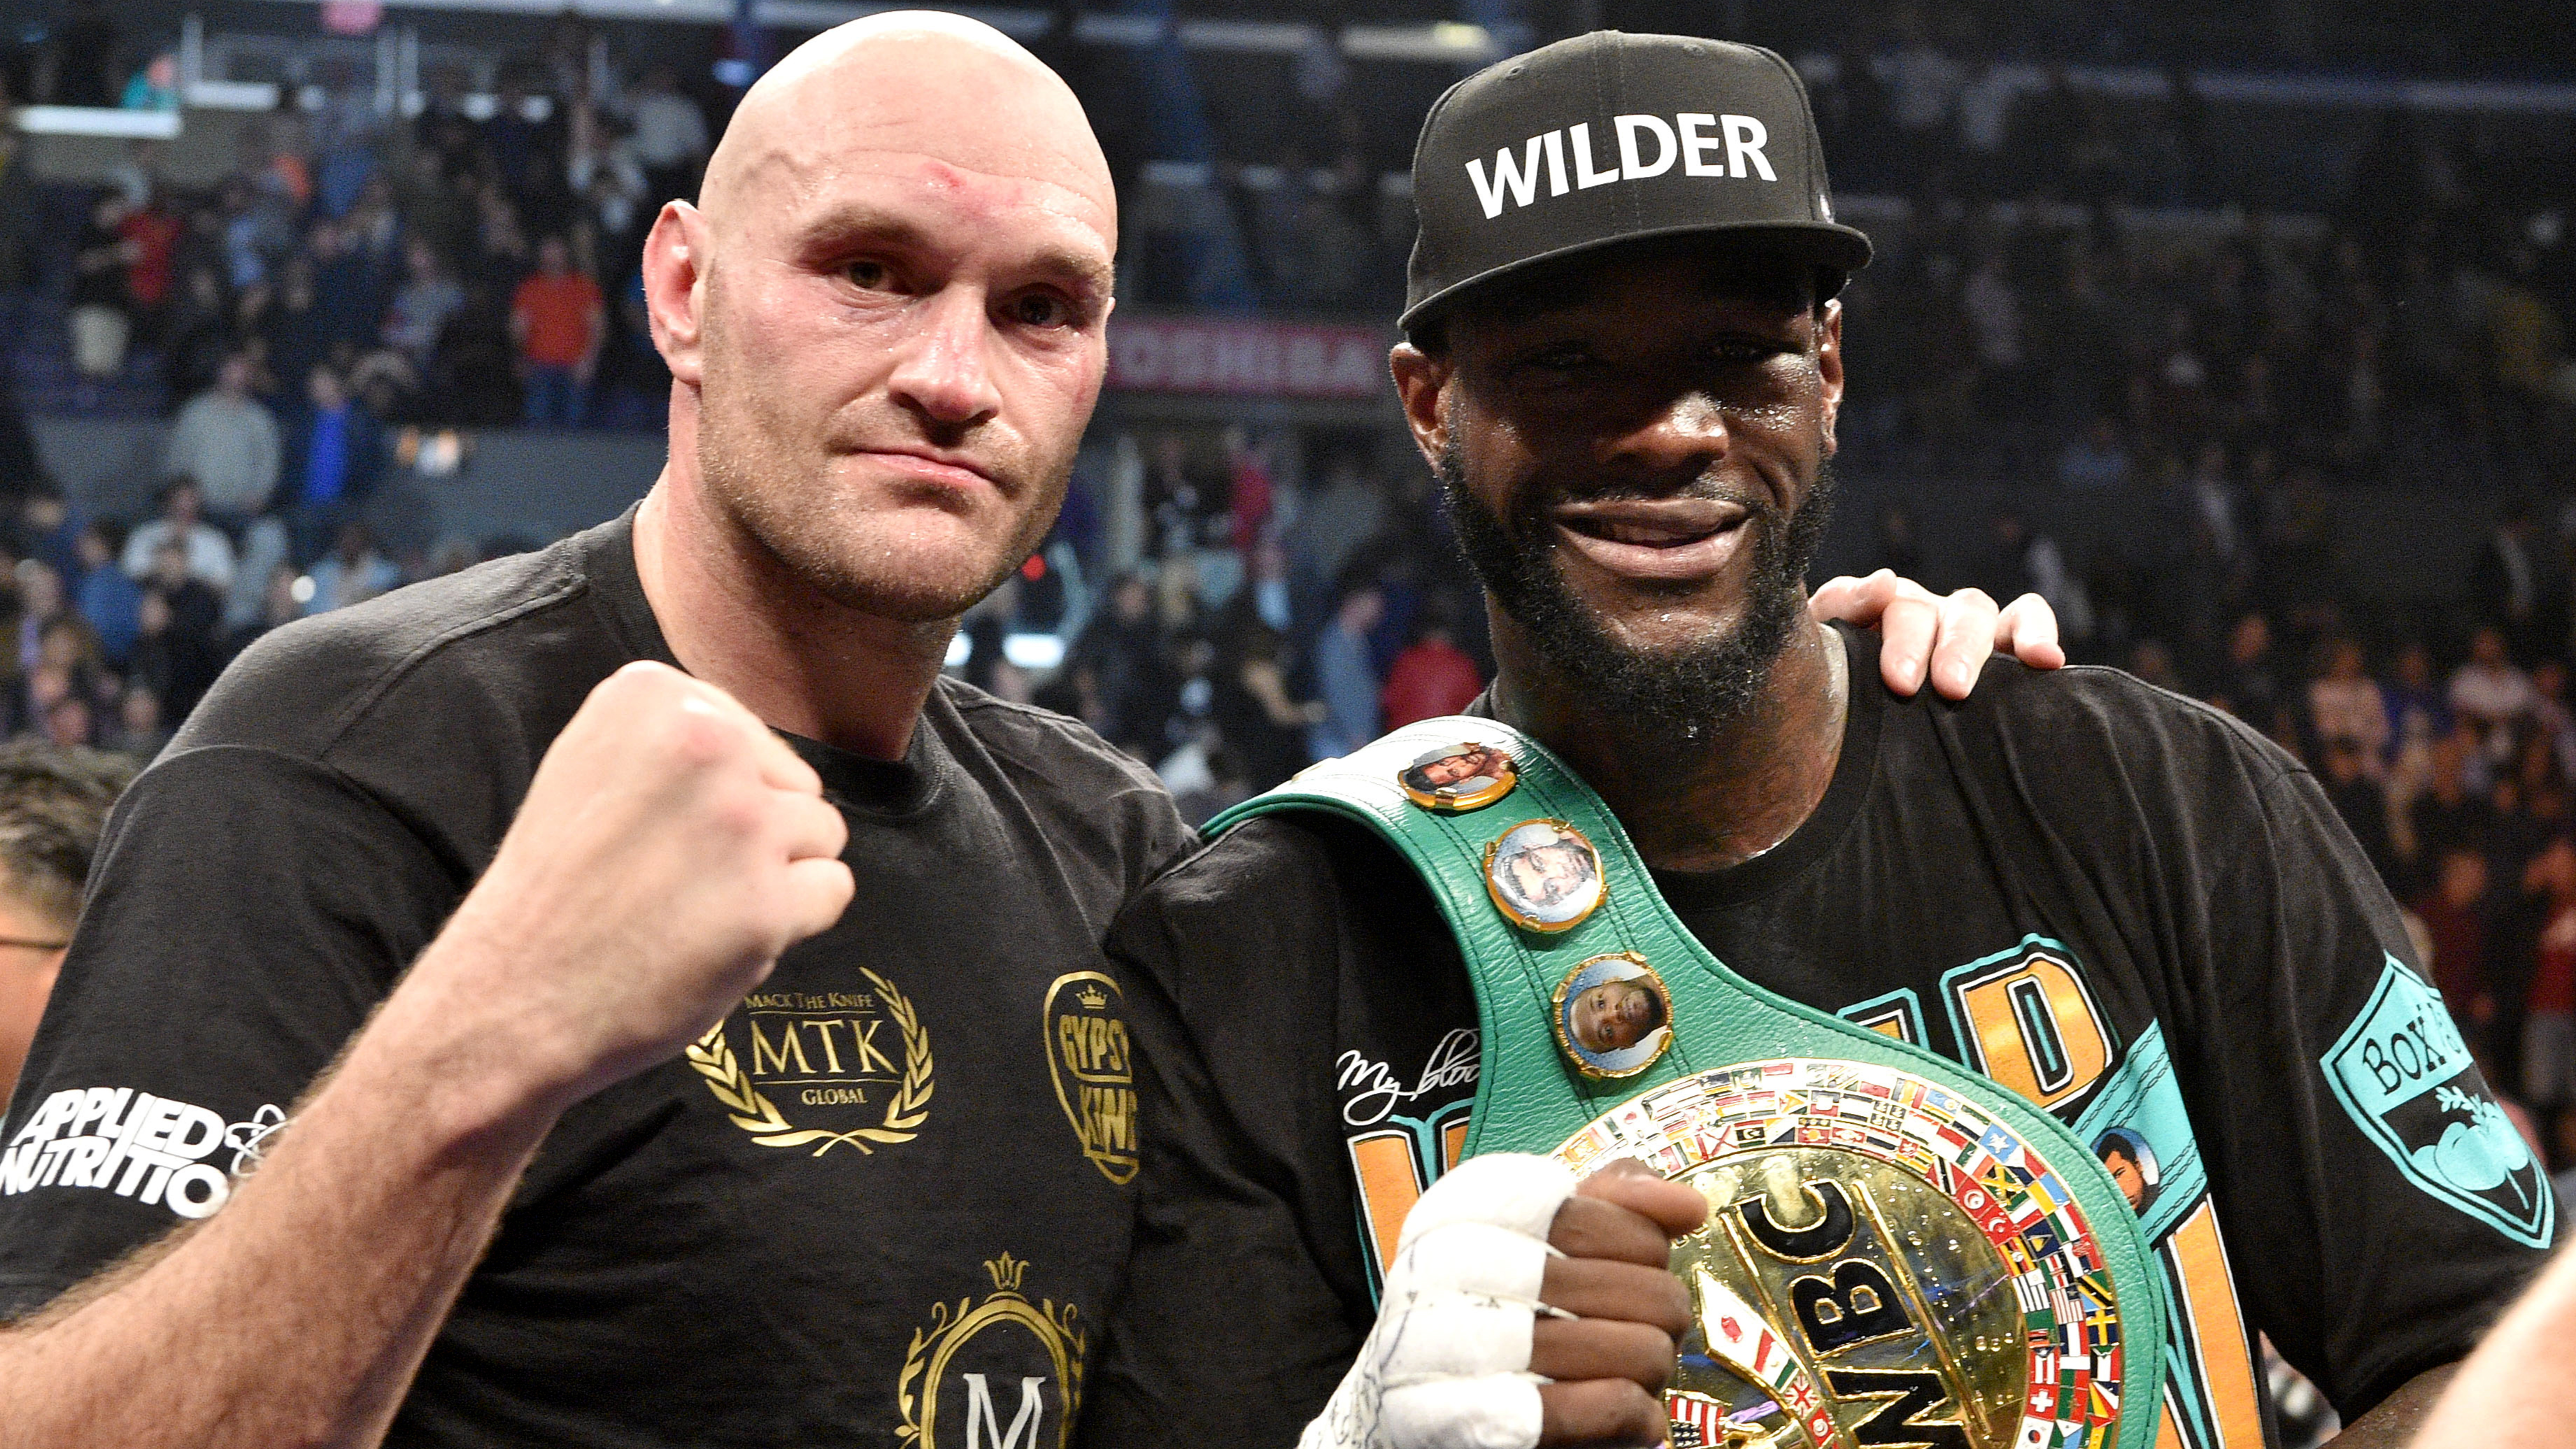 WBC Officially Order Deontay Wilder vs Tyson Fury Rematch